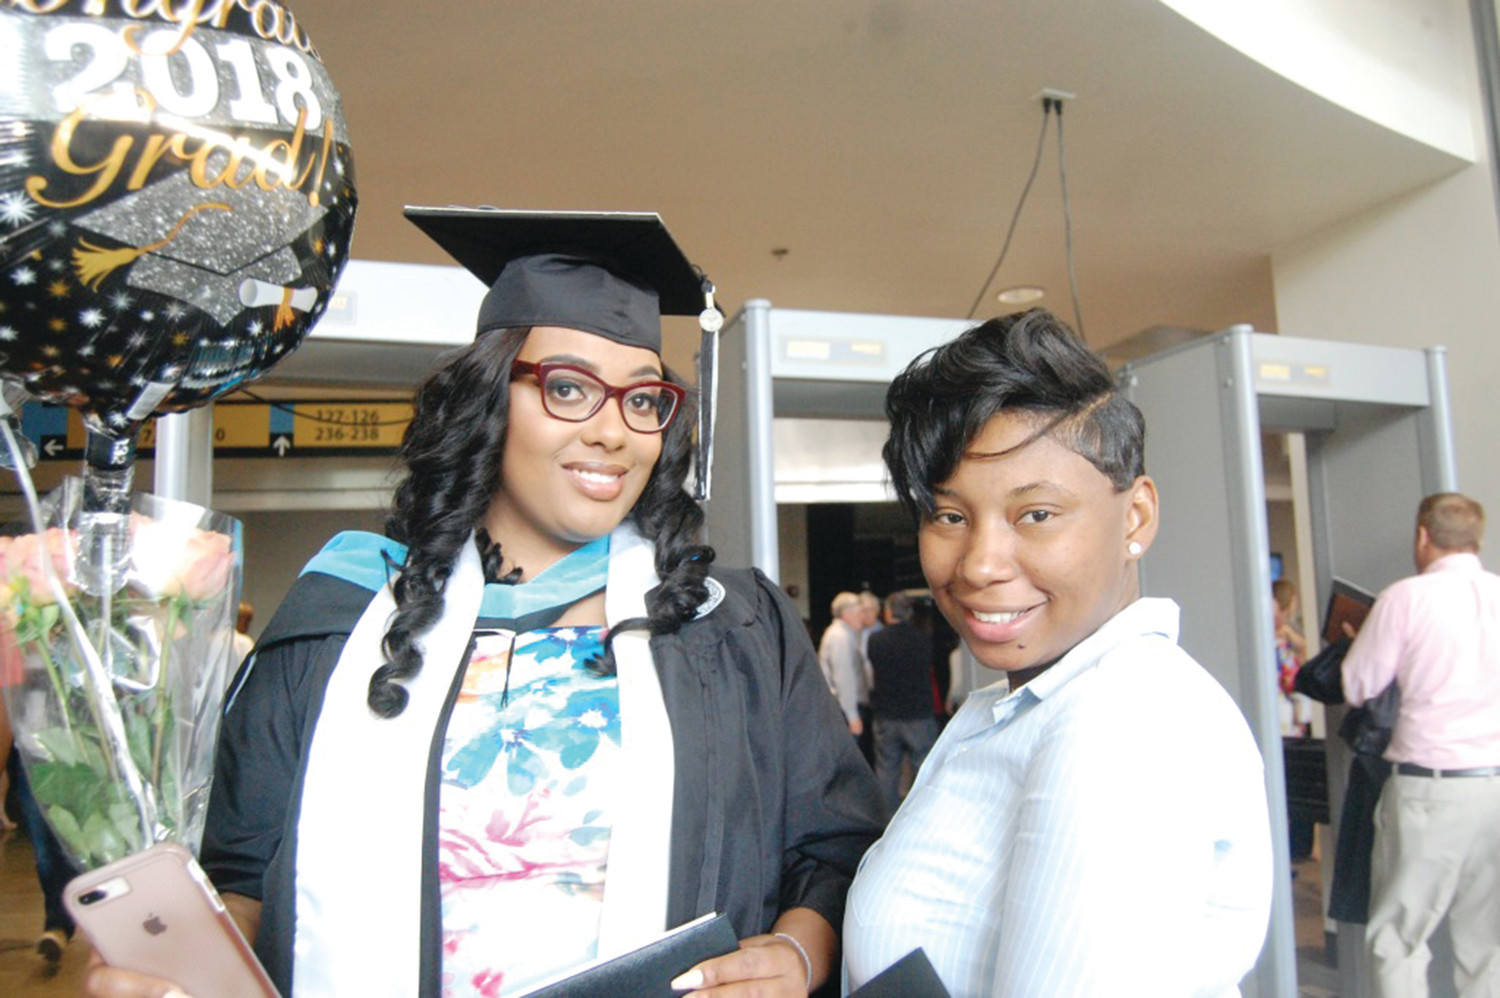 Quameé Andrade, left, who received her Master's in Education, smiles with her sister Denise Geegbae following her graduation from Providence College.